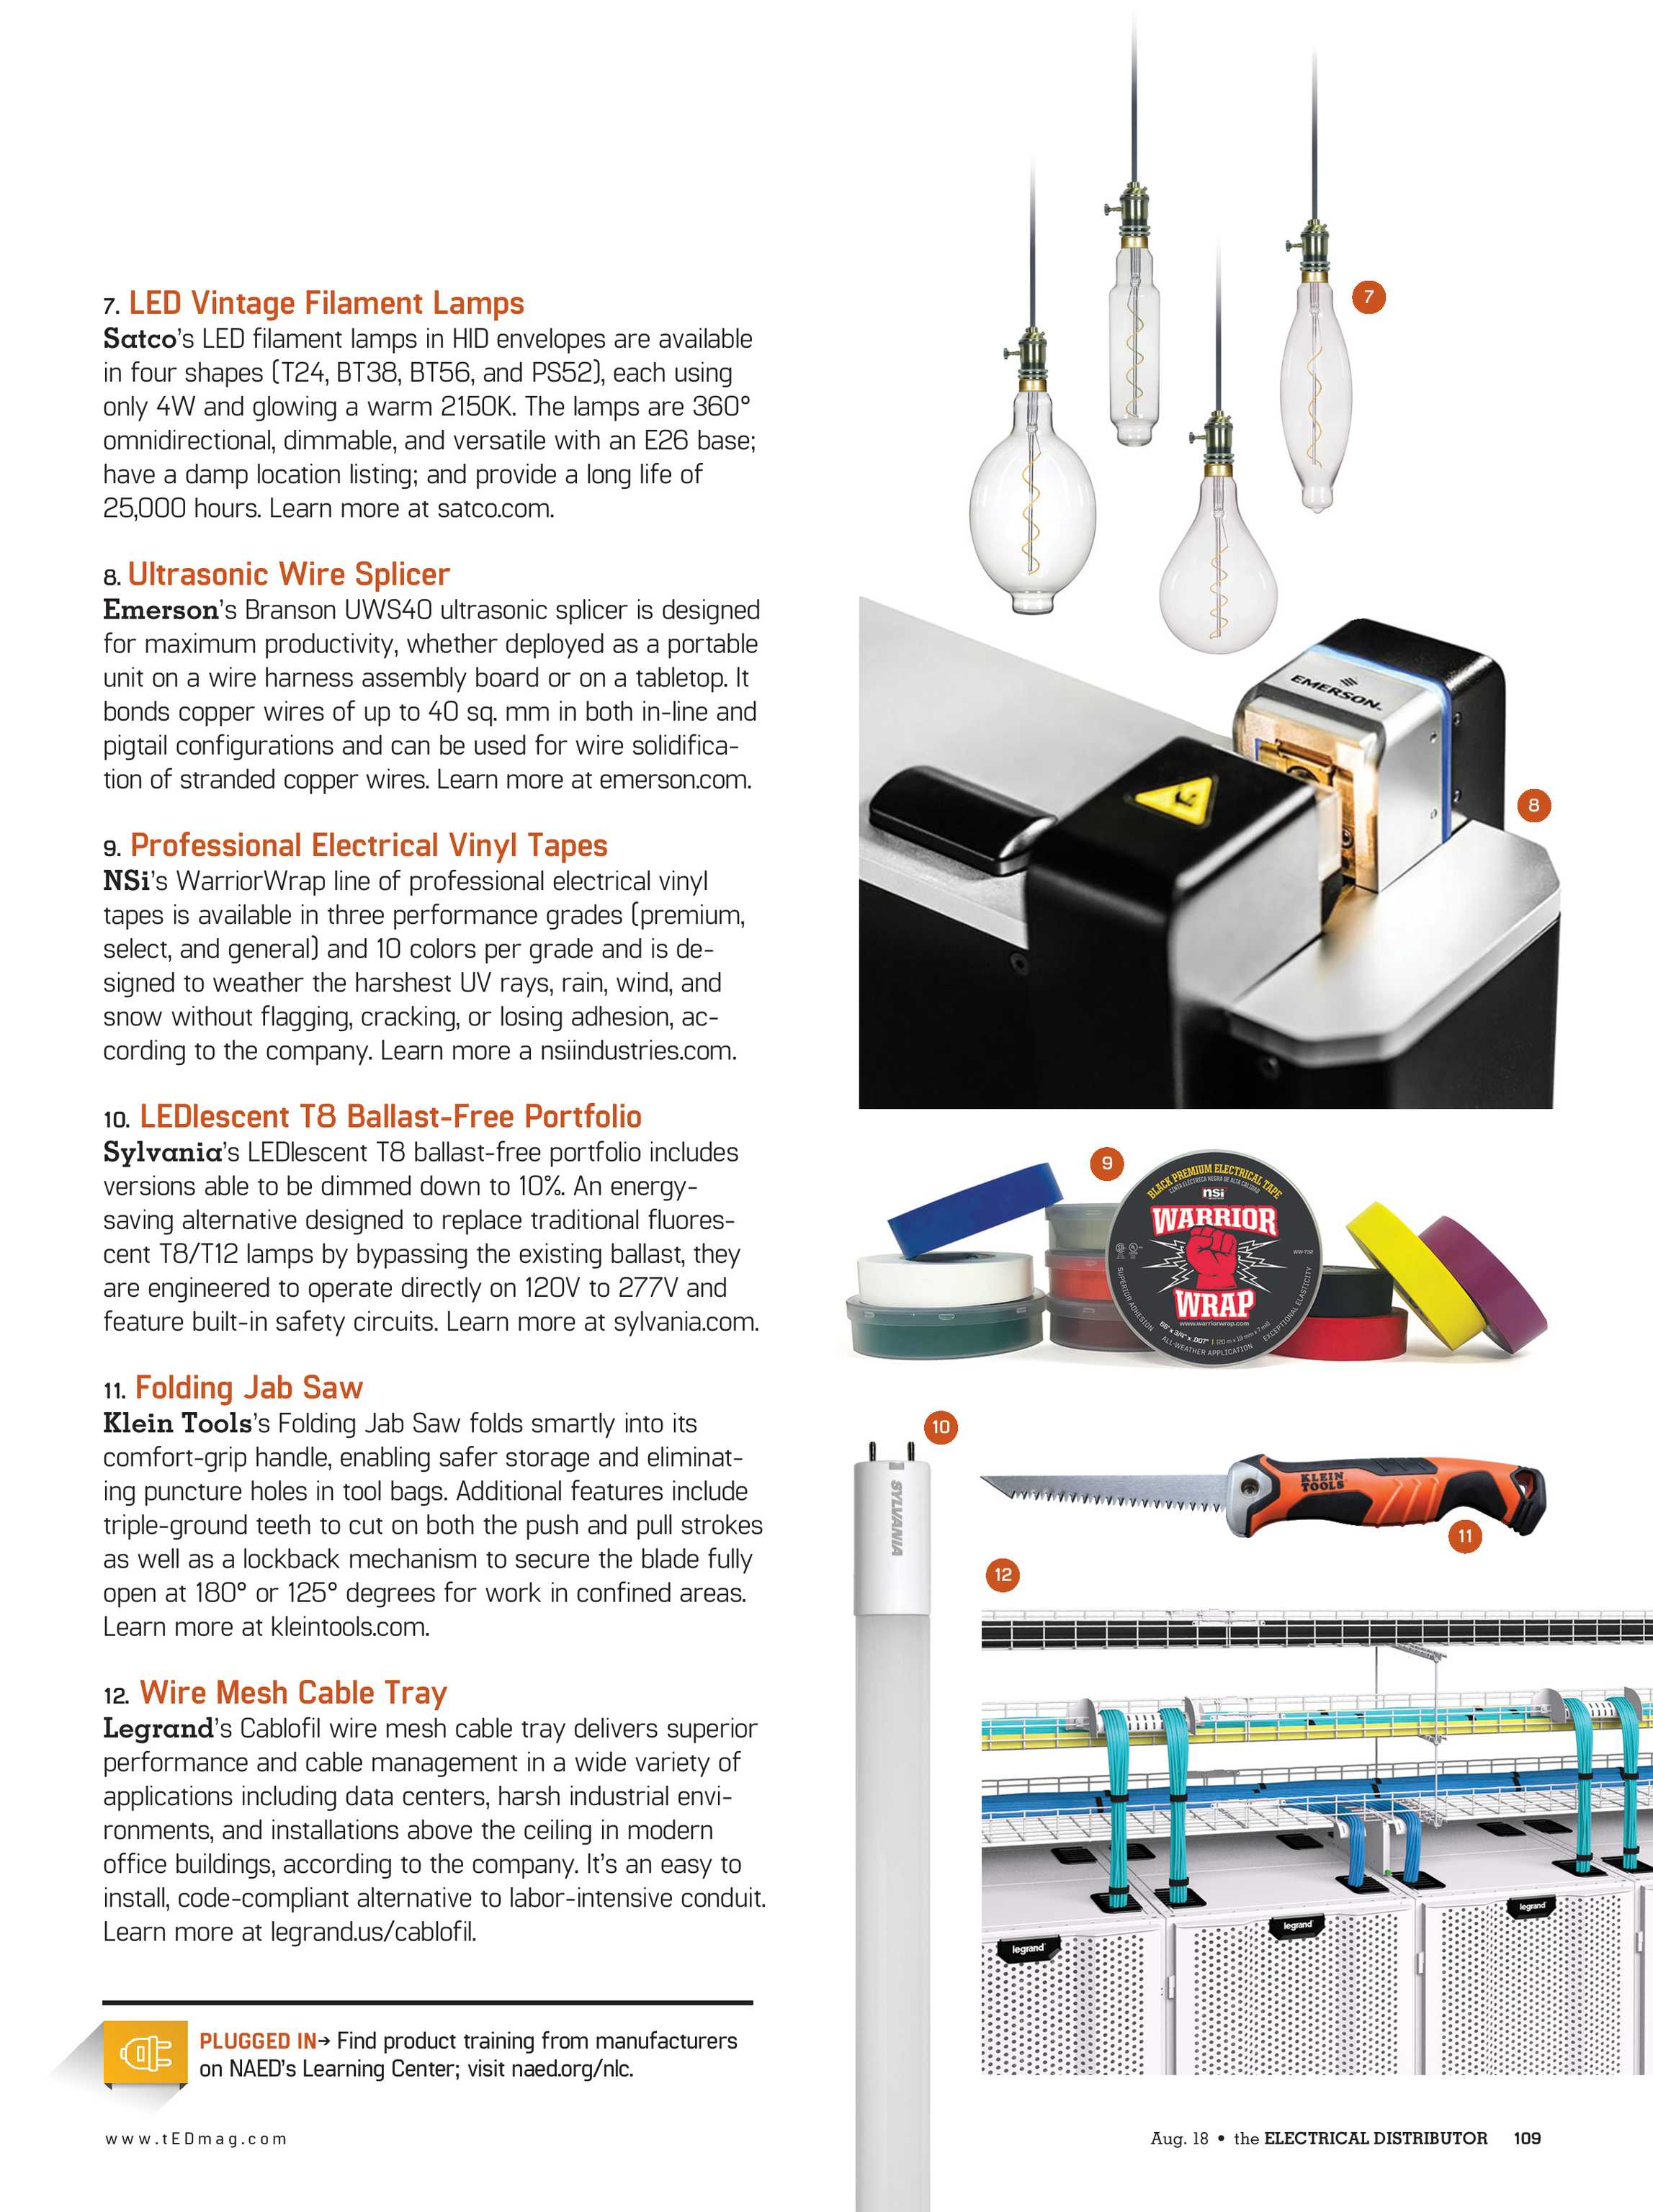 Ted Magazine August 2018 Page 108 Wiring Harness Conduit 109